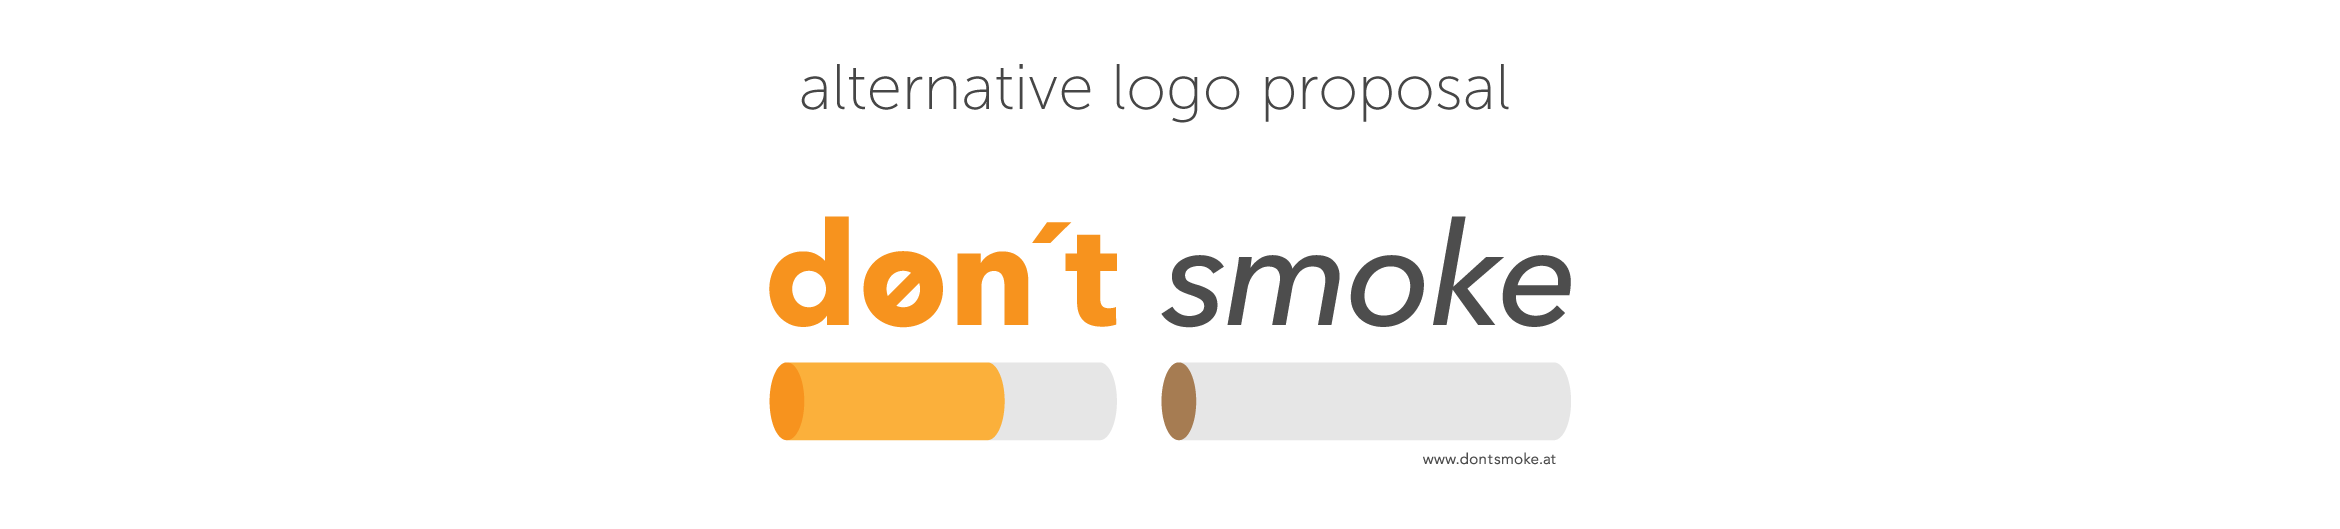 dontsmoke-logo-alternative